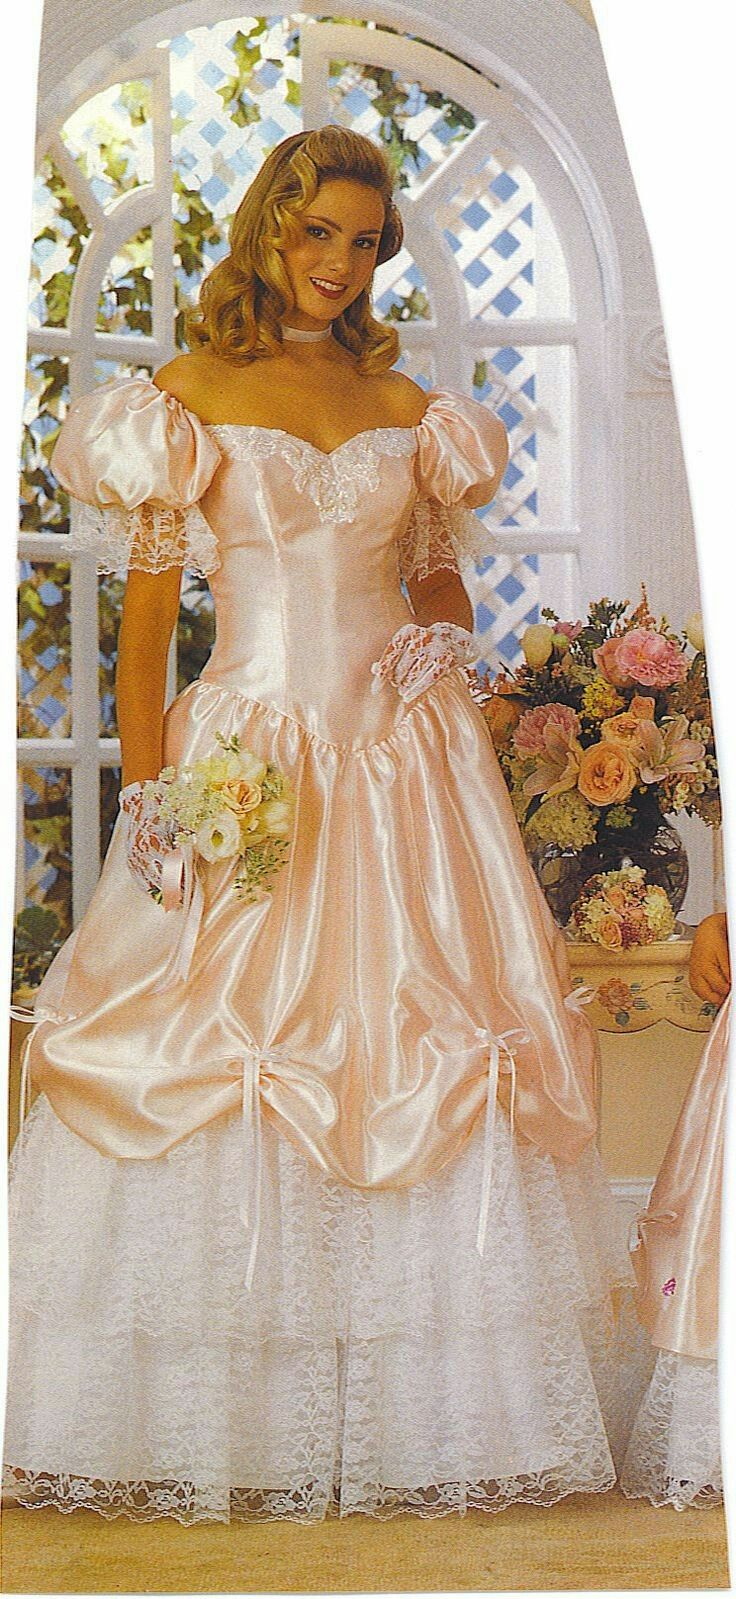 5a6ddf8e3c3b4 1980s Peach Bridesmaid Dresses